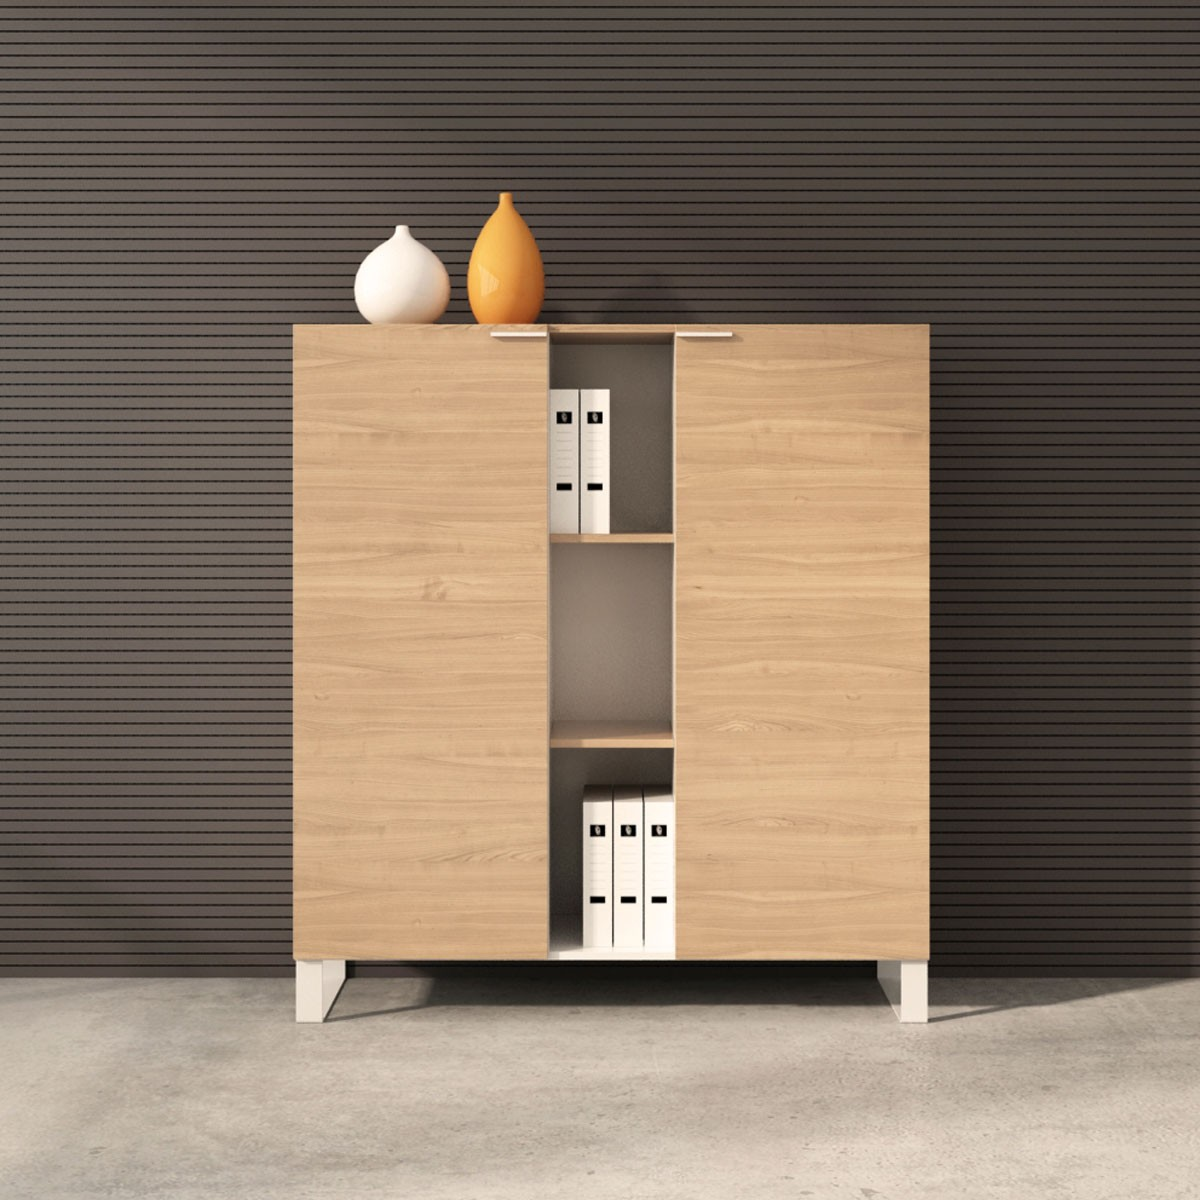 """Office Storage Cabinet 52""""H x 47.2""""W x 15.7""""D in Oak and White with 2 doors (CG12)"""